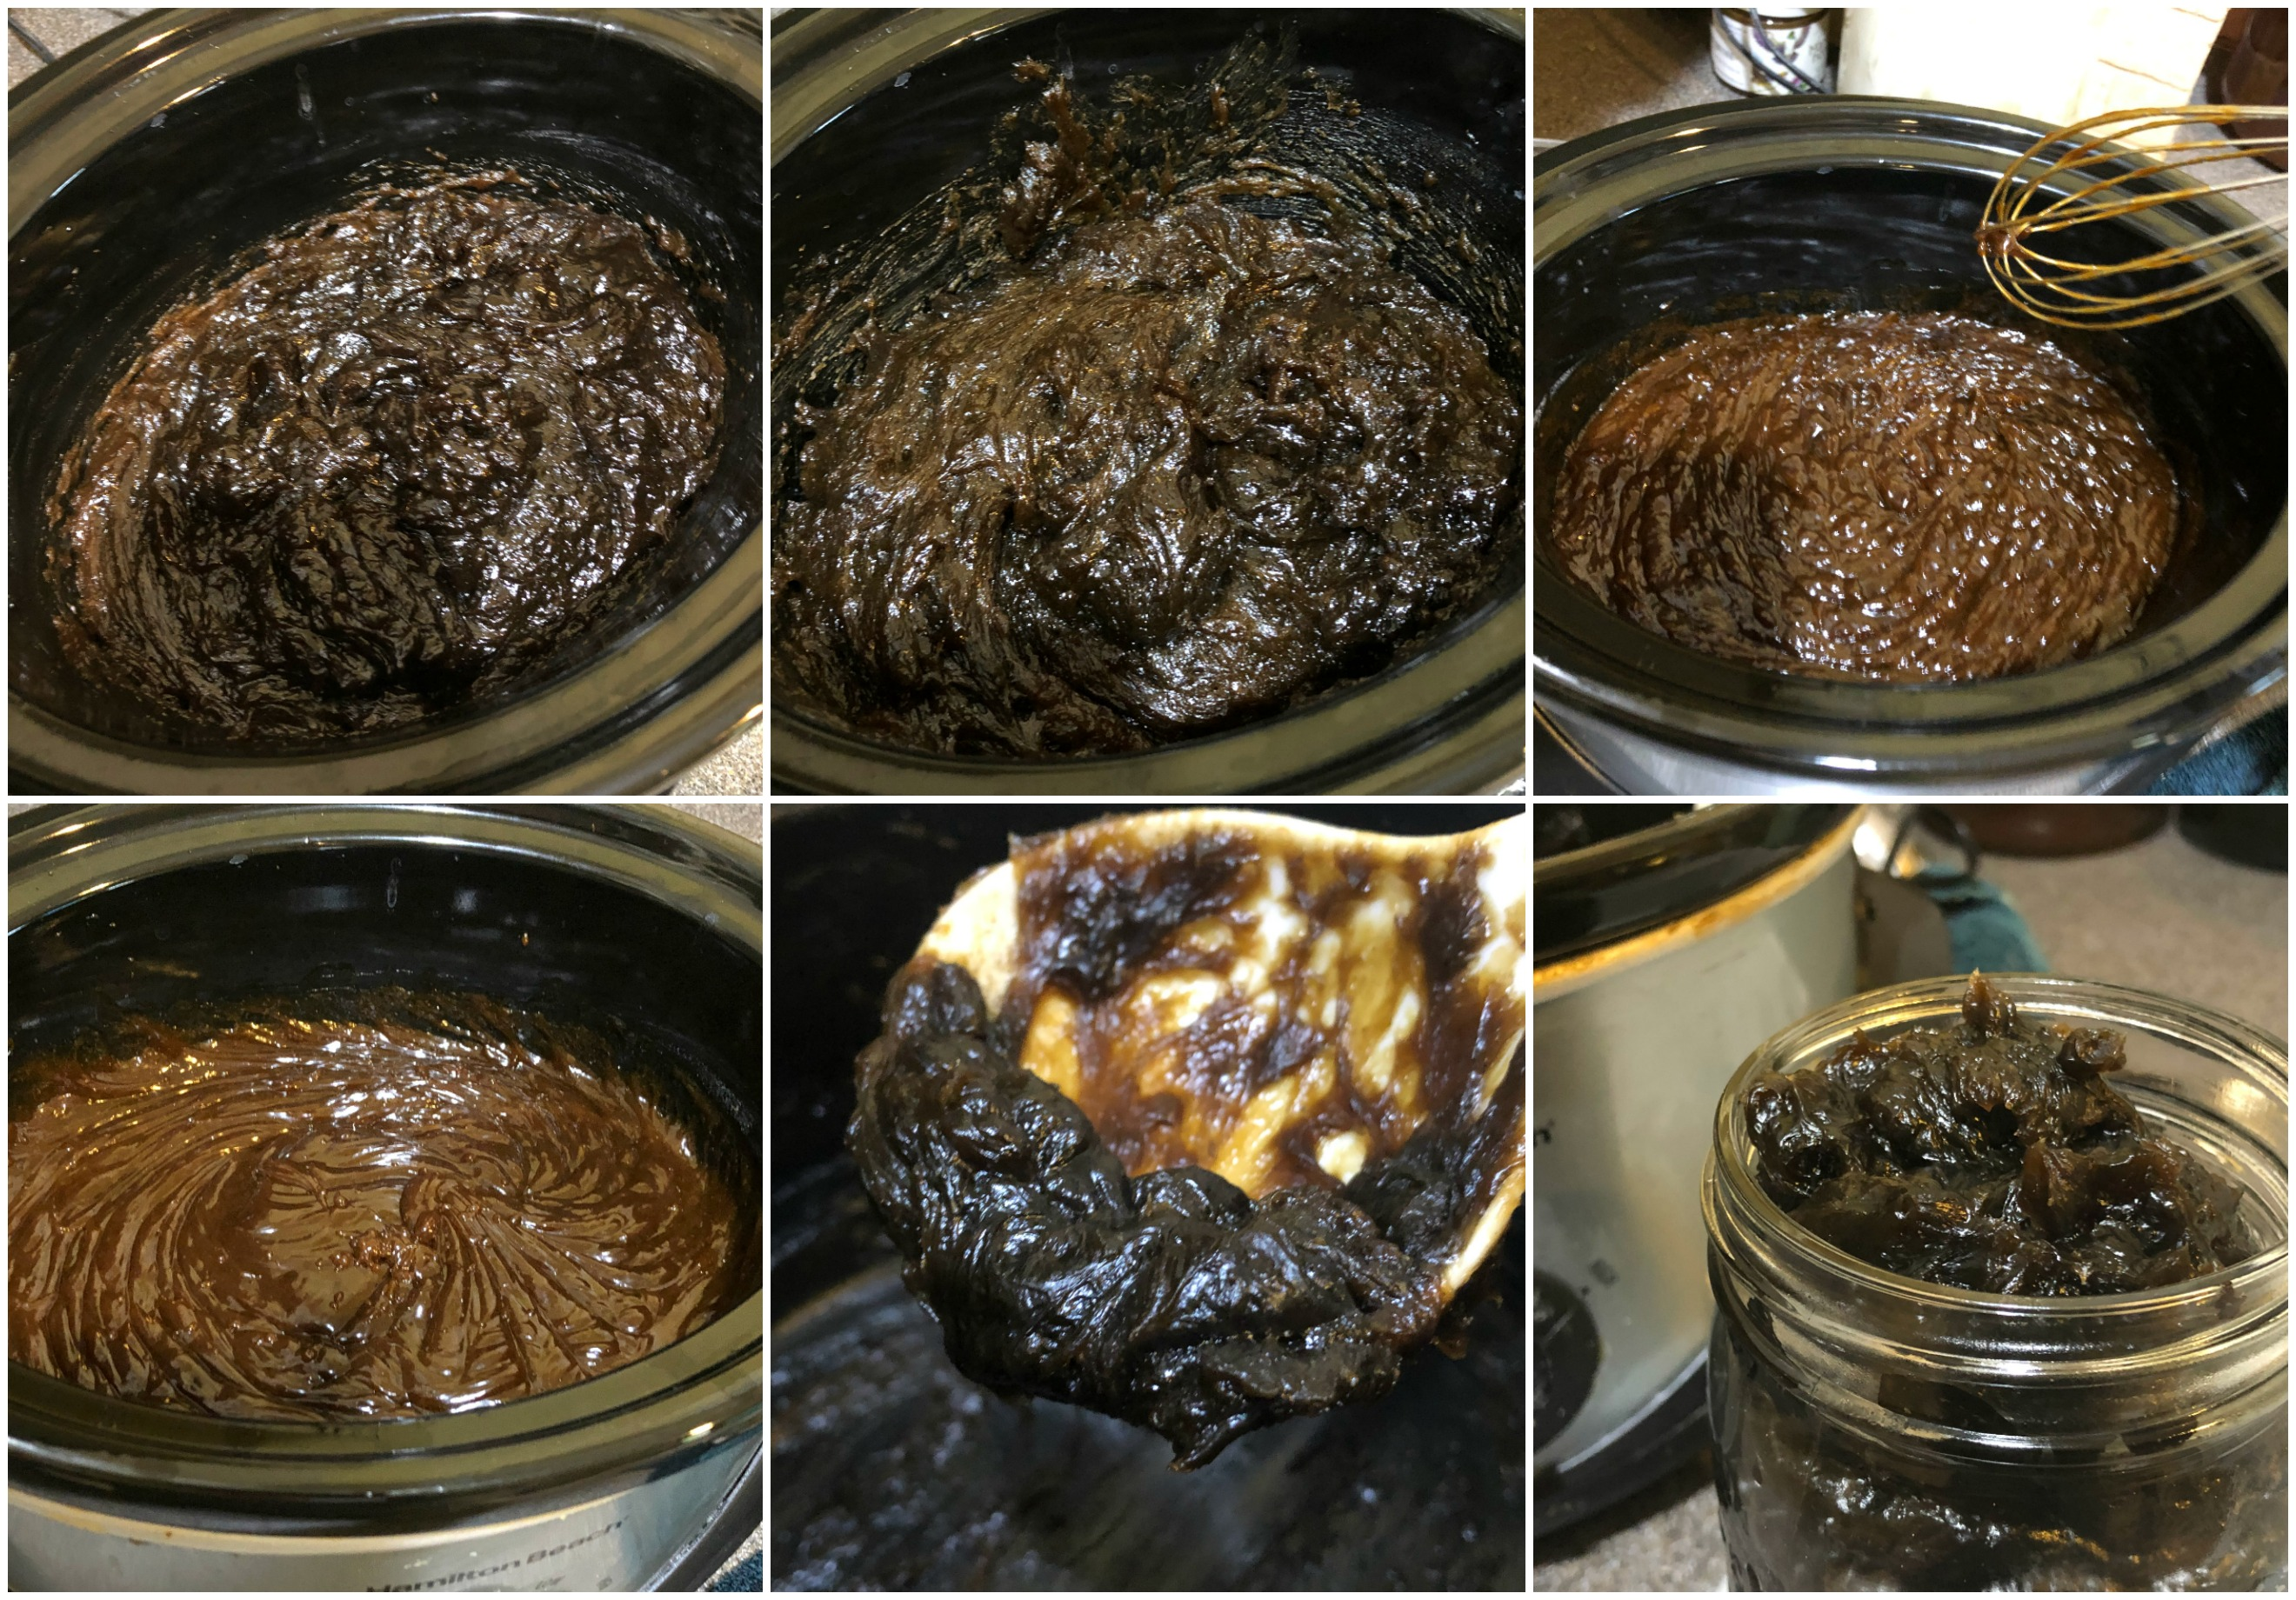 How To Make Pine Tar Liquid Soap Rebooted Mom